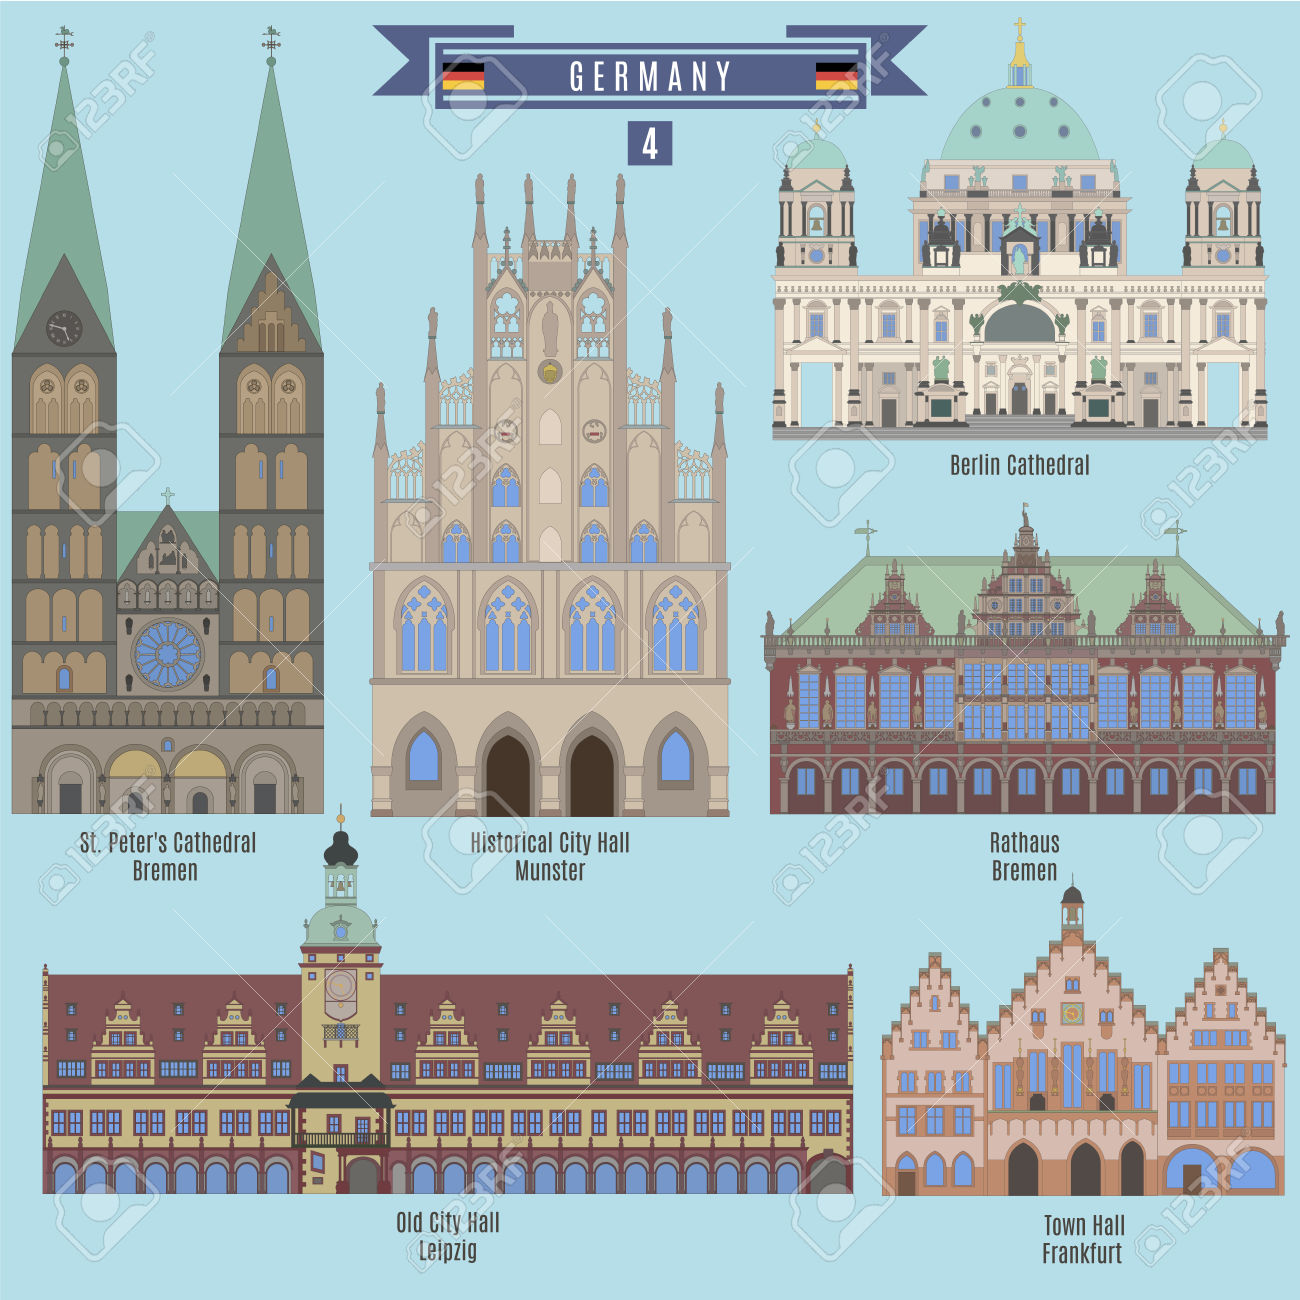 Famous Places In Germany: Historical City Hall, Munster; City.